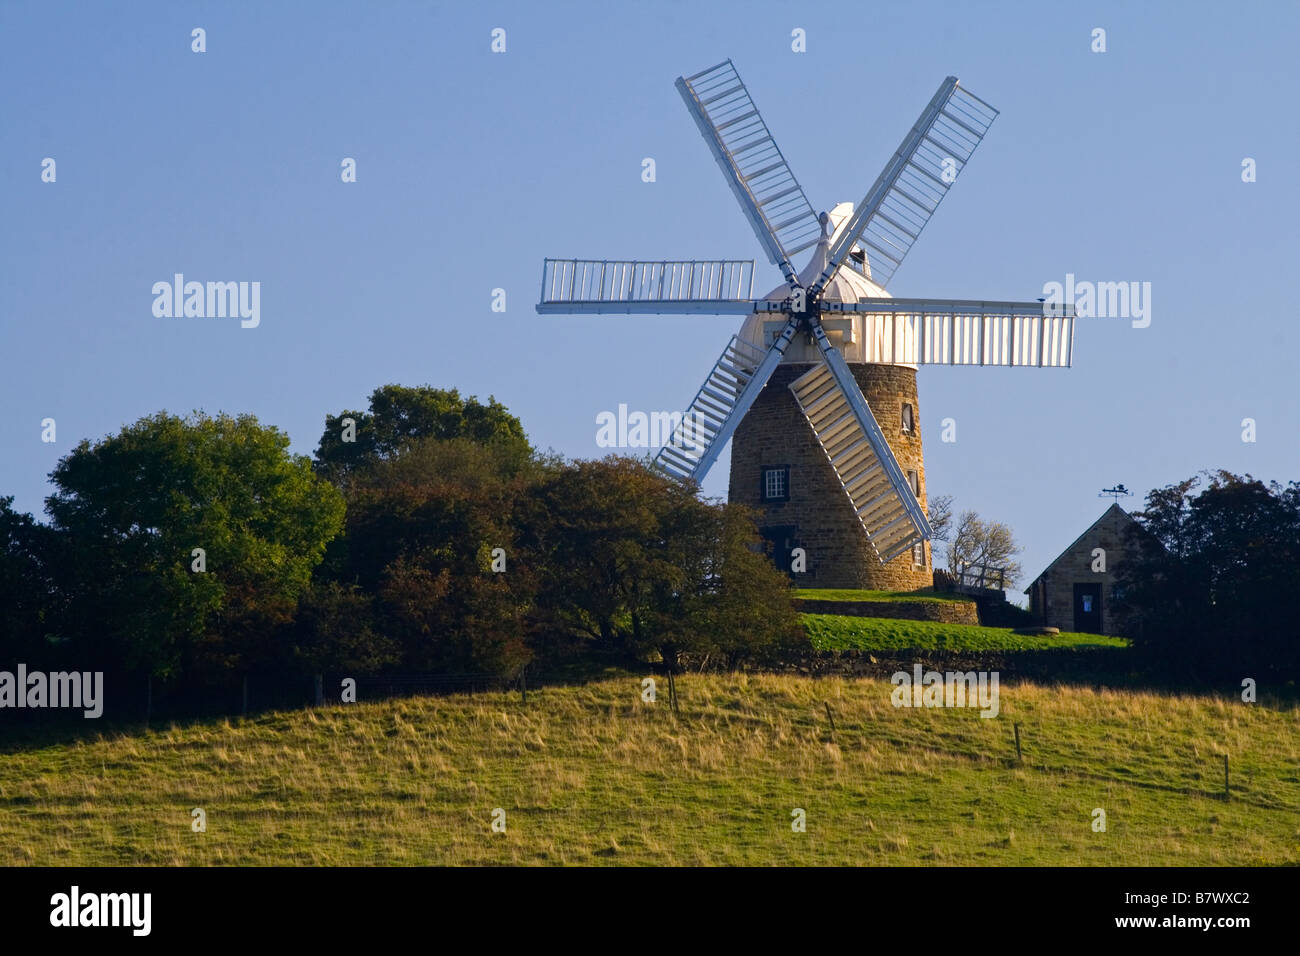 Heage Windmill in the Amber Valley Derbyshire England UK Stock Photo